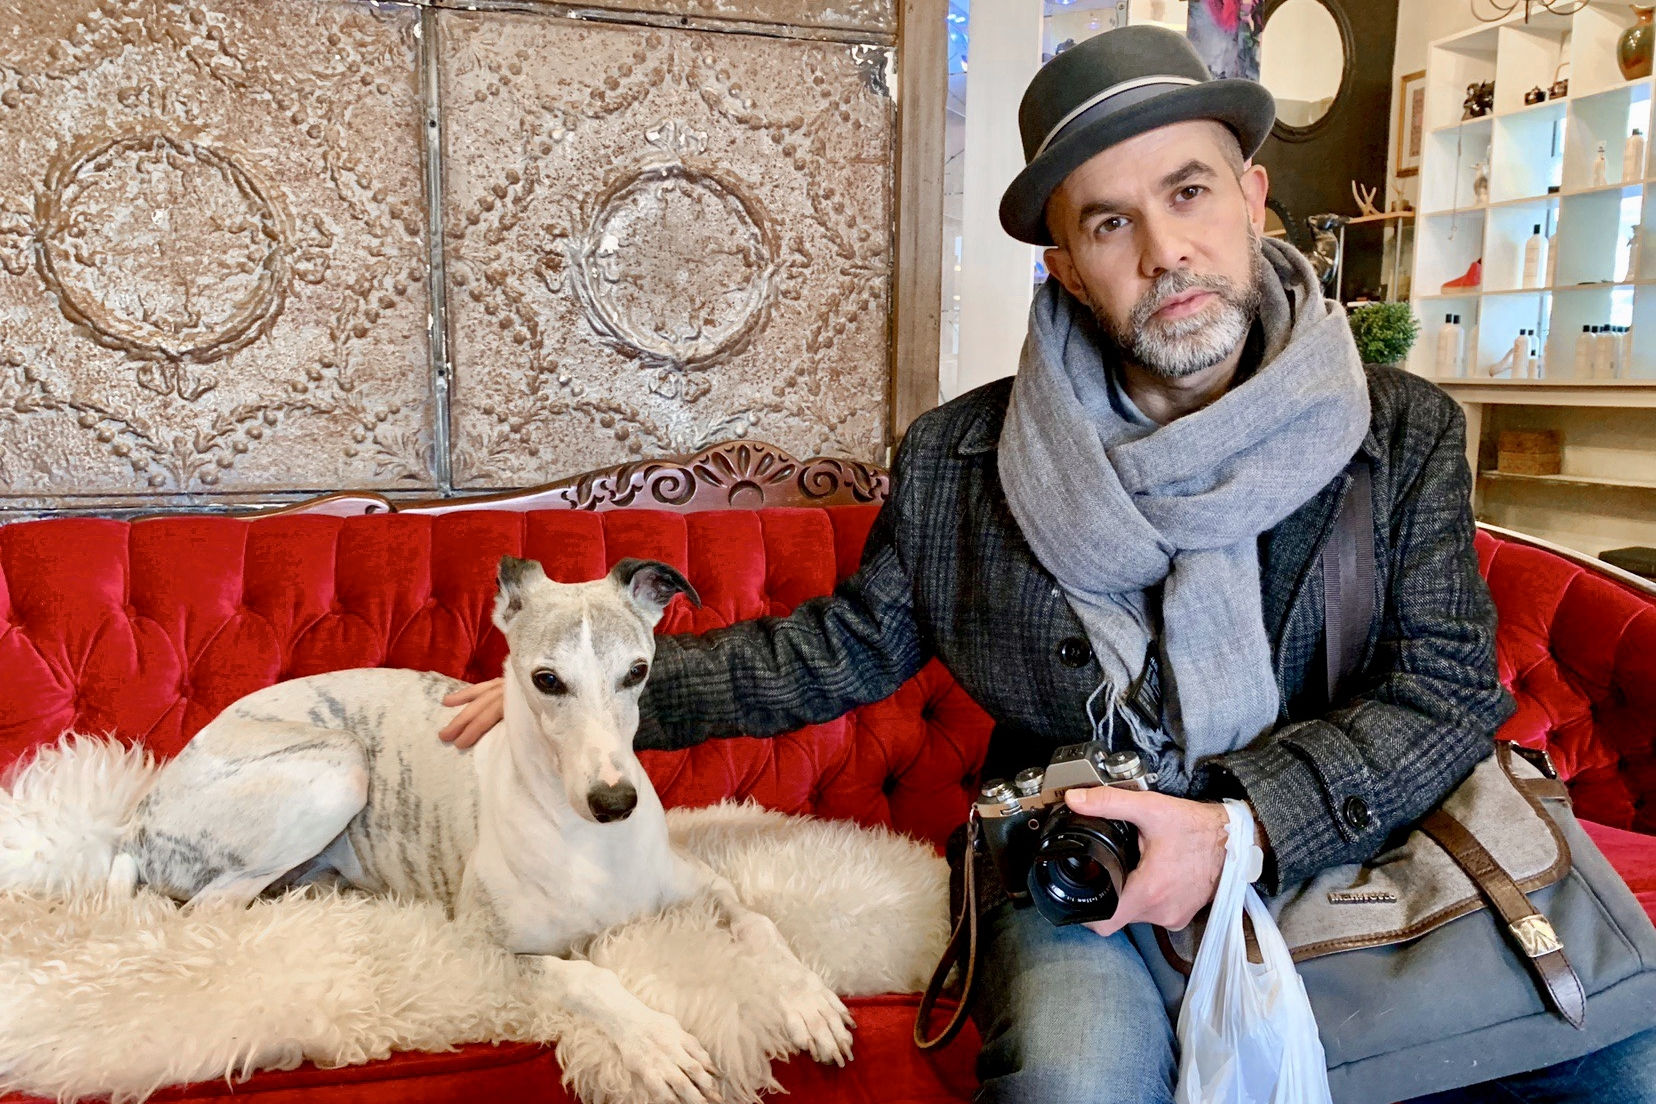 Aidan sitting next to the greyhound Miguel on Seed Shoppe's red velvet sofa